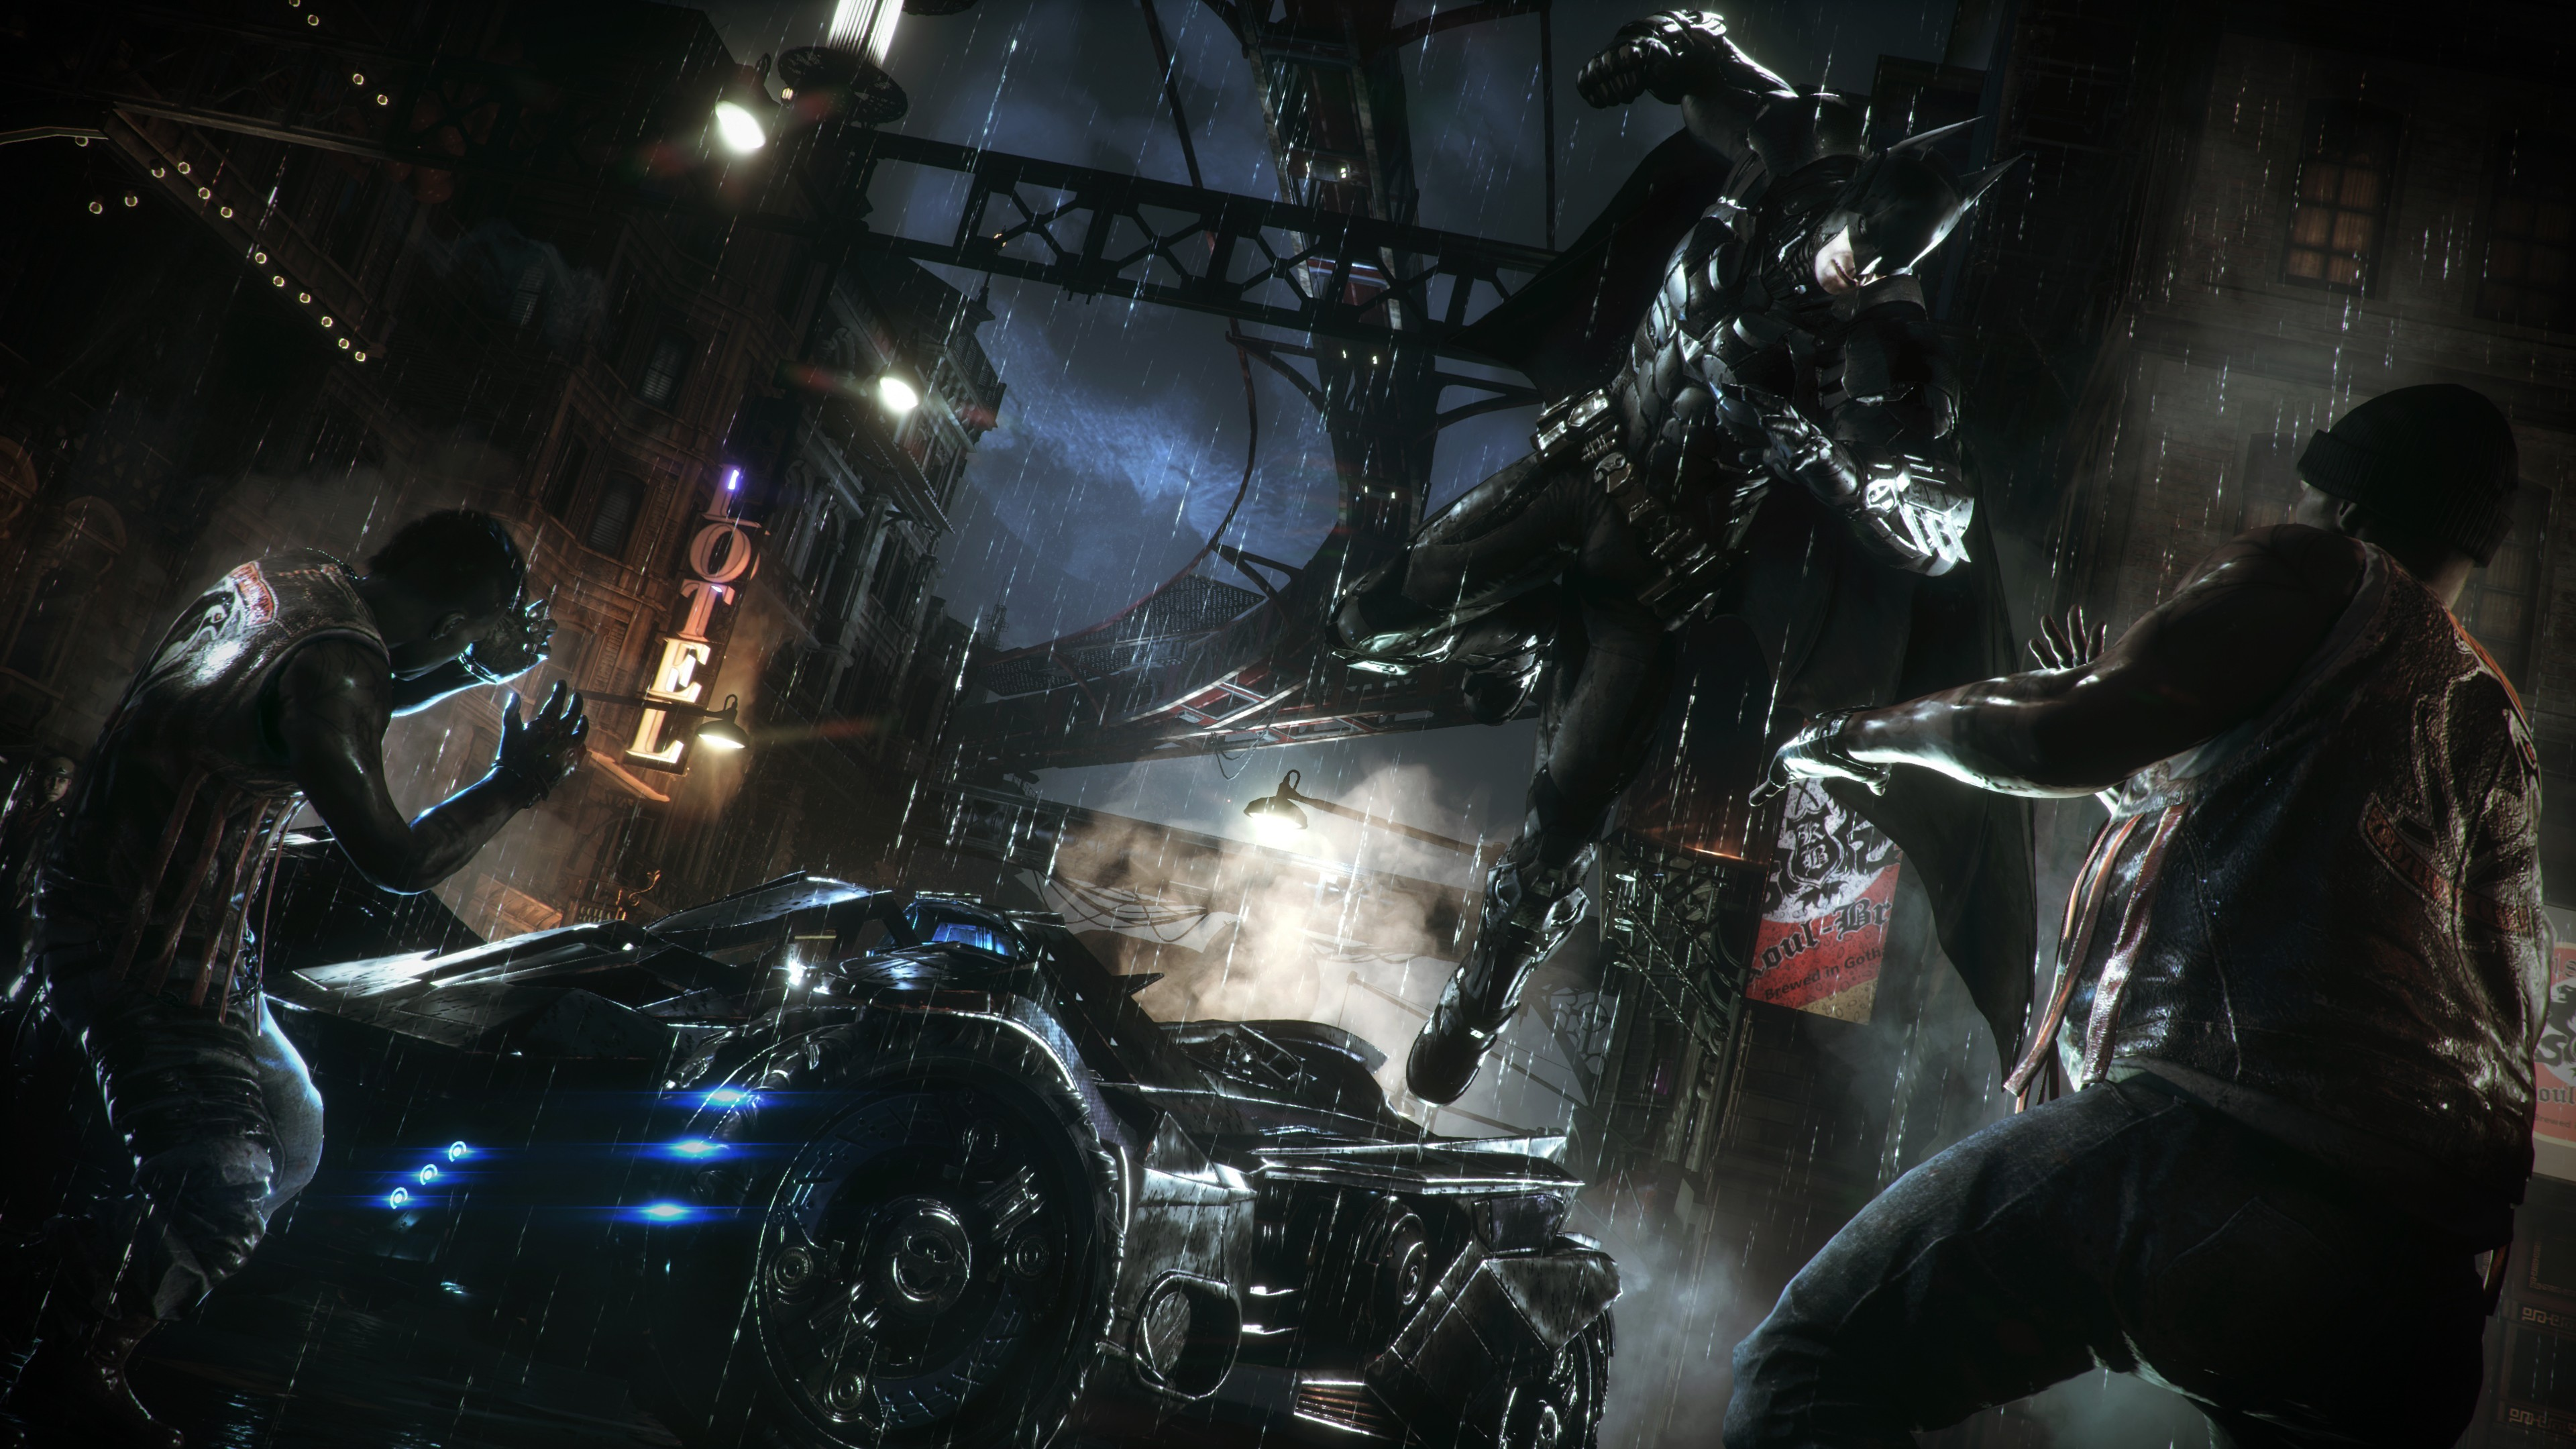 Batman Arkham Knight 4k Wallpaper Posted By Michelle Sellers